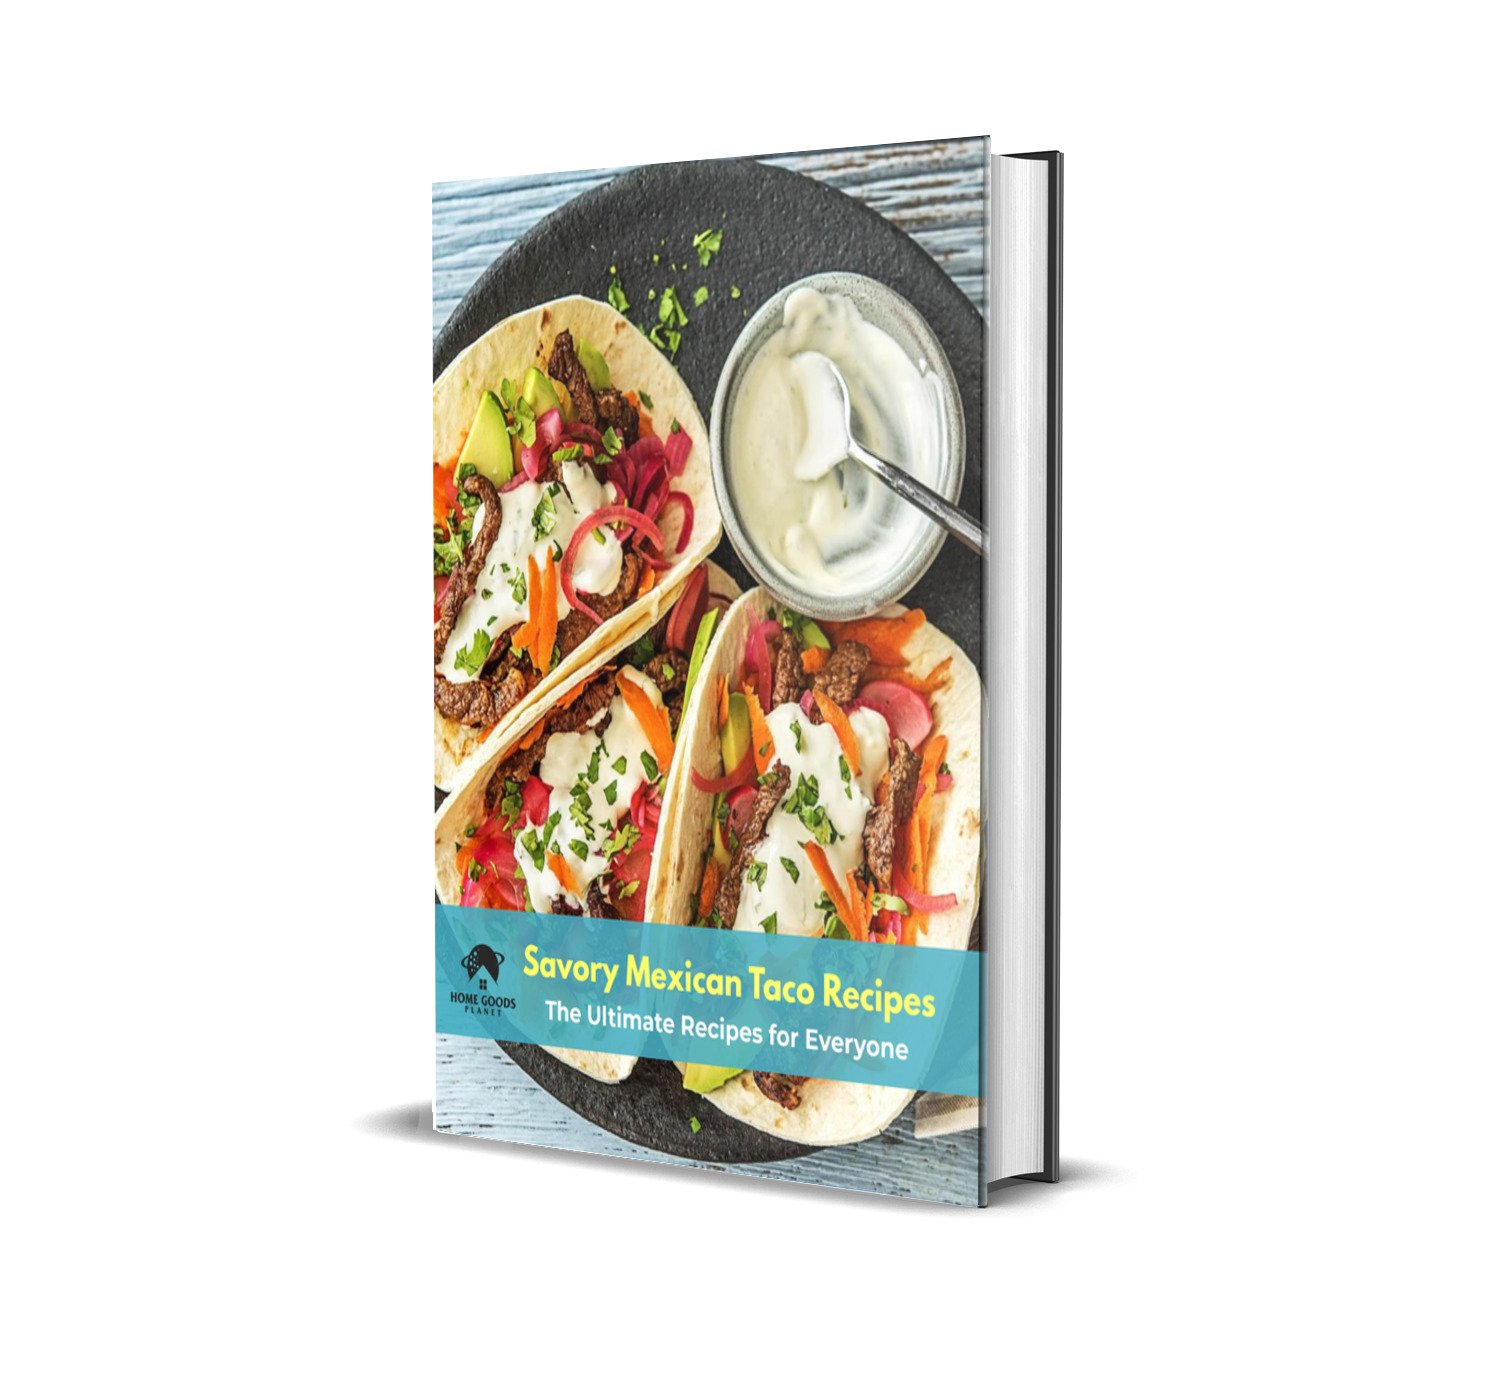 Taco Holder - Set of 2 Shell Racks - Stainless Steel Durable Taco Stand Tray - Ideal for Hard or Soft Shell Tacos - Oven & Dishwasher Safe Tacos Serving Tray or Taco Platter - Includes Recipe e-book by Home Goods Planet (Image #7)